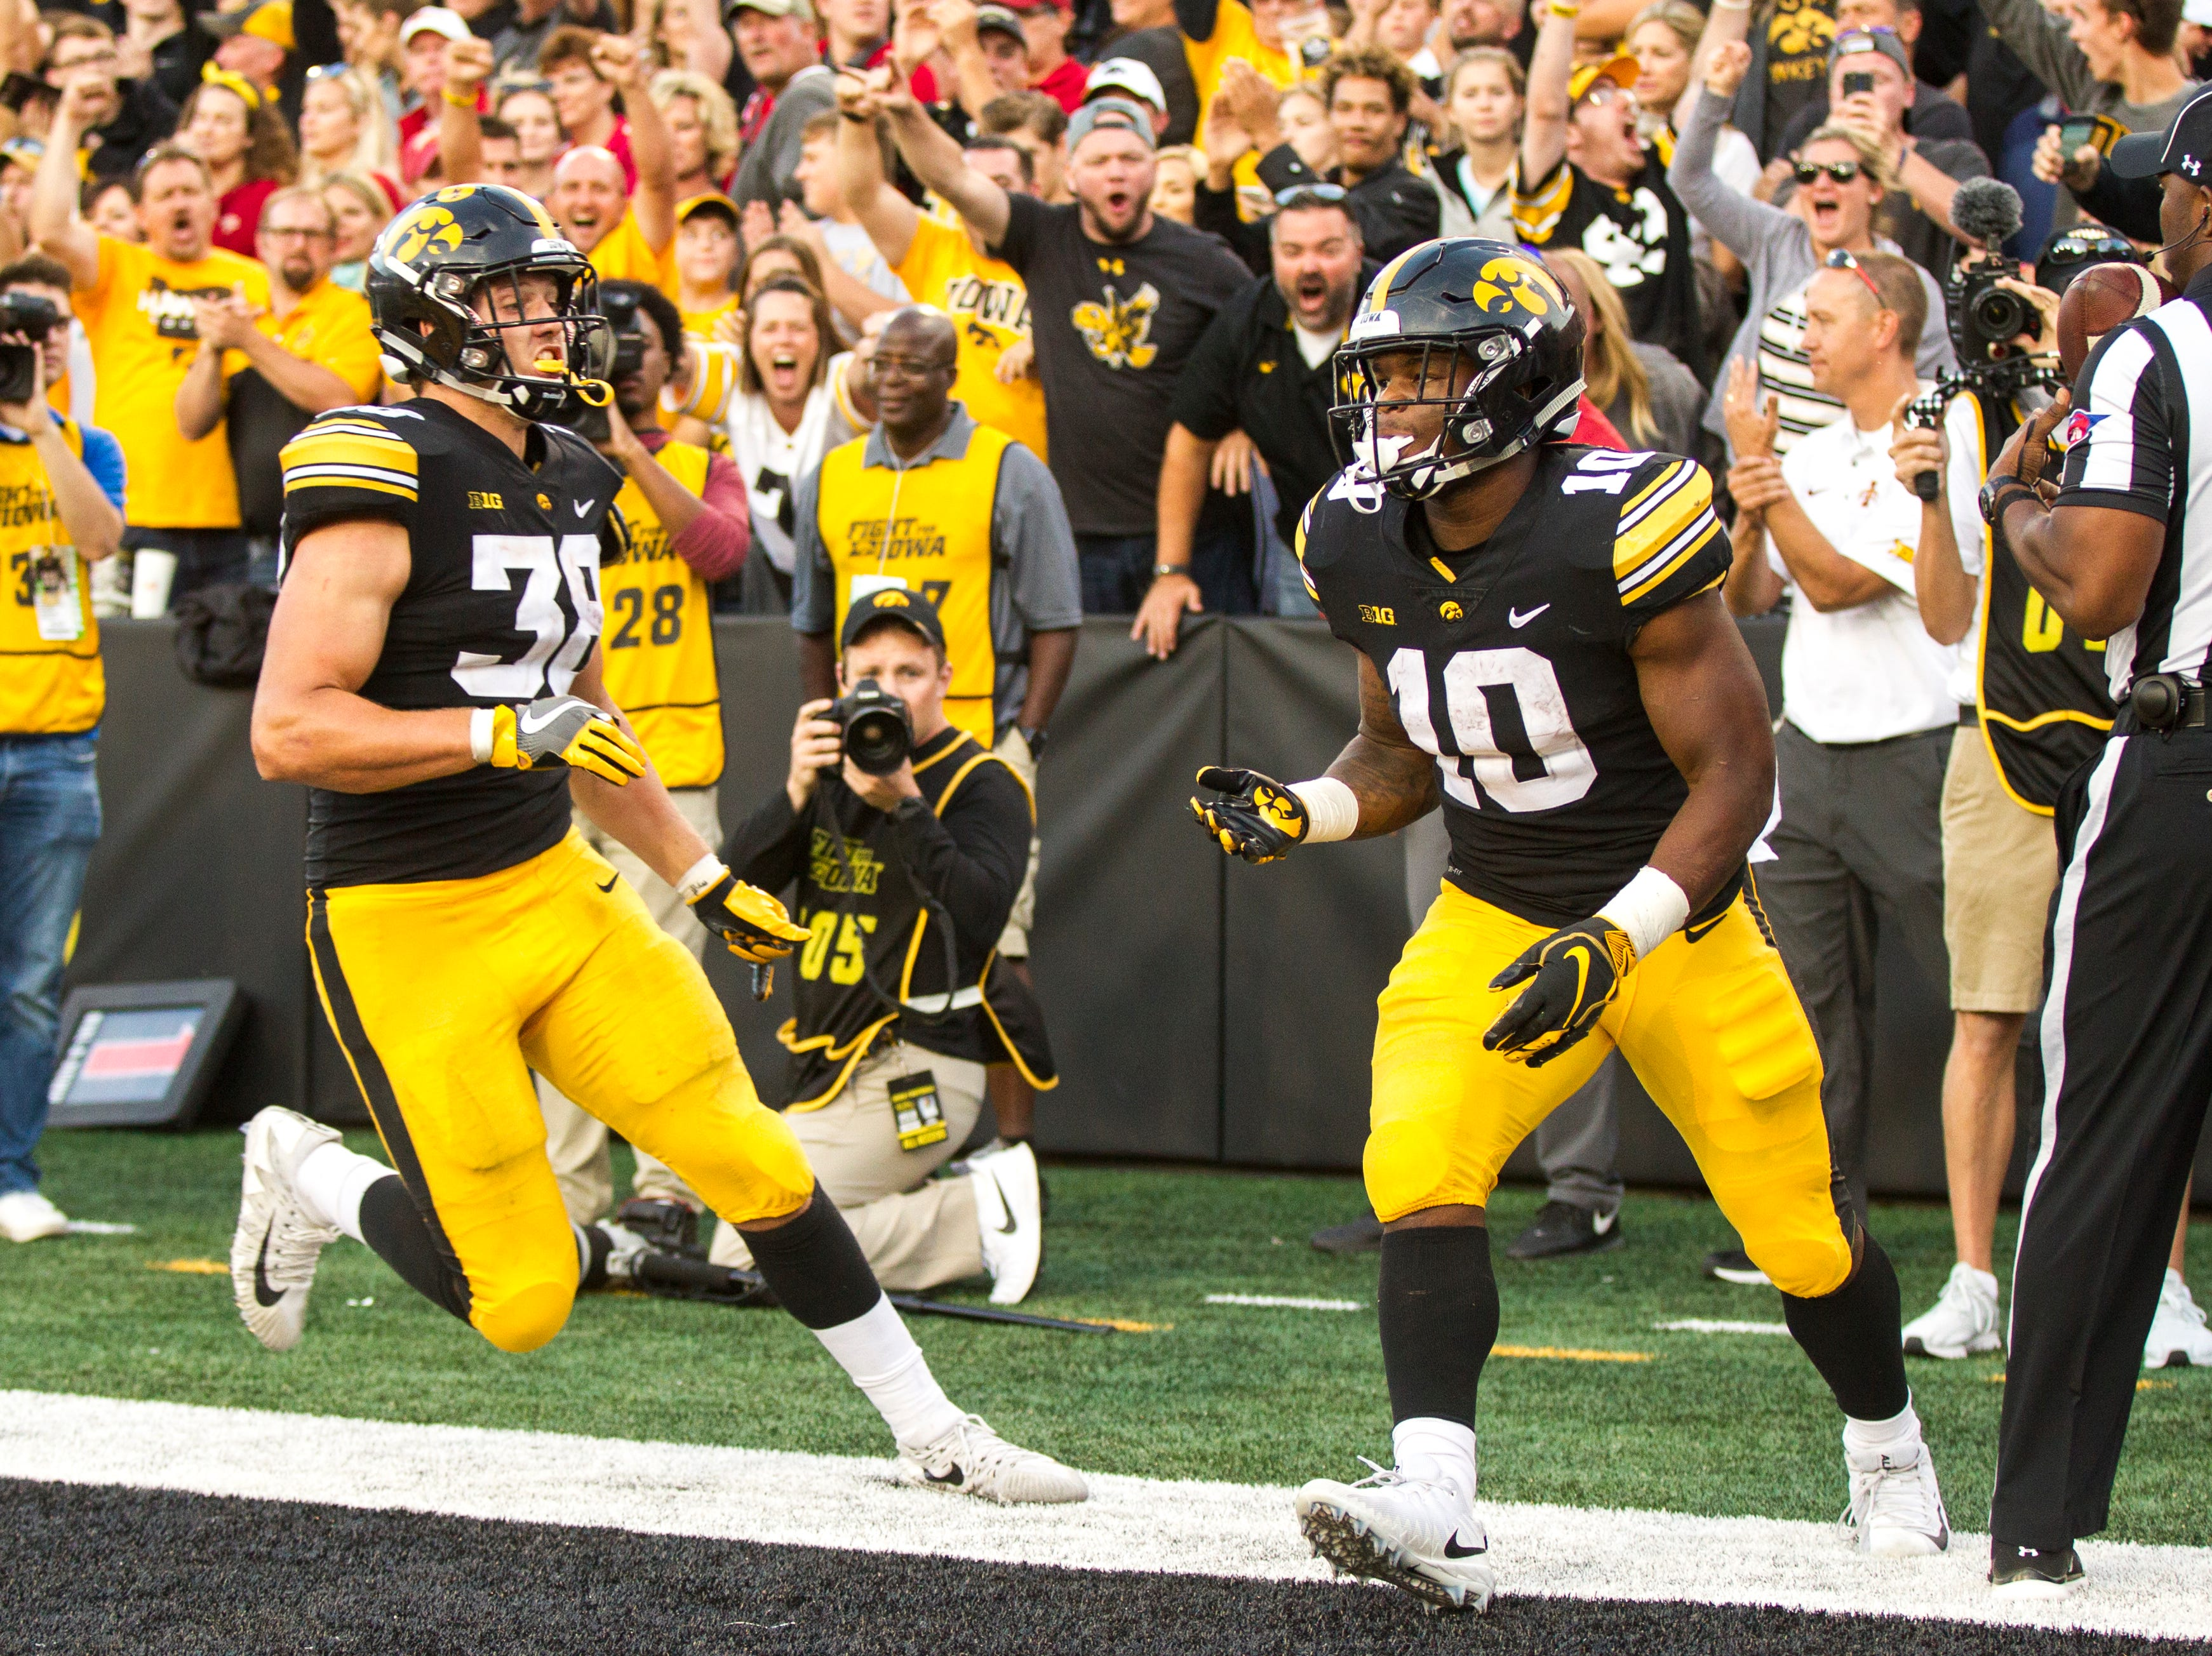 Iowa running back Mekhi Sargent (10) scores a touchdown during the Cy-Hawk NCAA football game on Saturday, Sept. 8, 2018, at Kinnick Stadium in Iowa City.